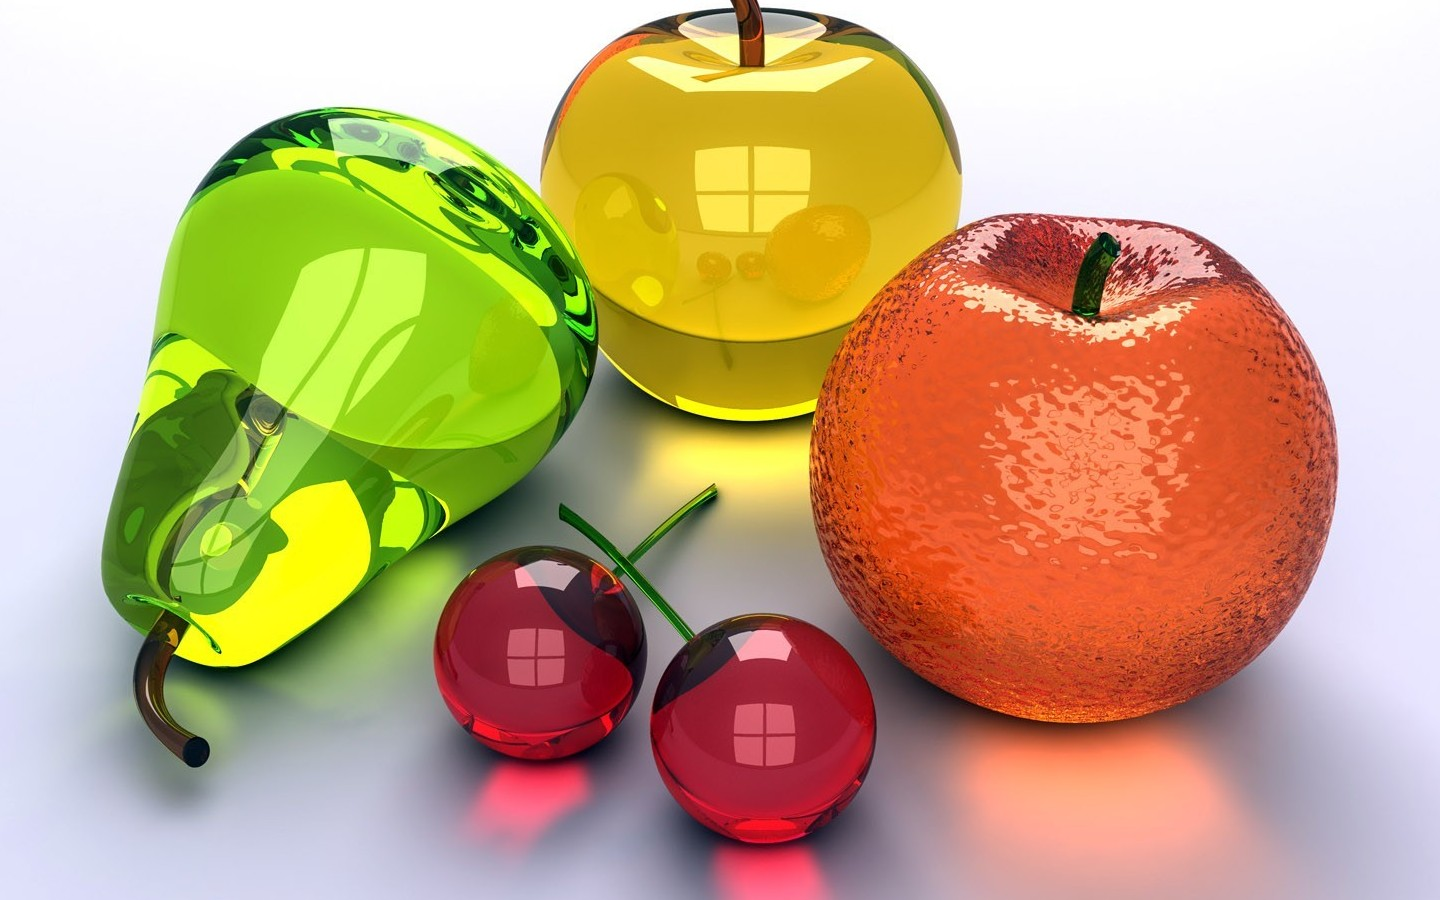 fruits-hd-images